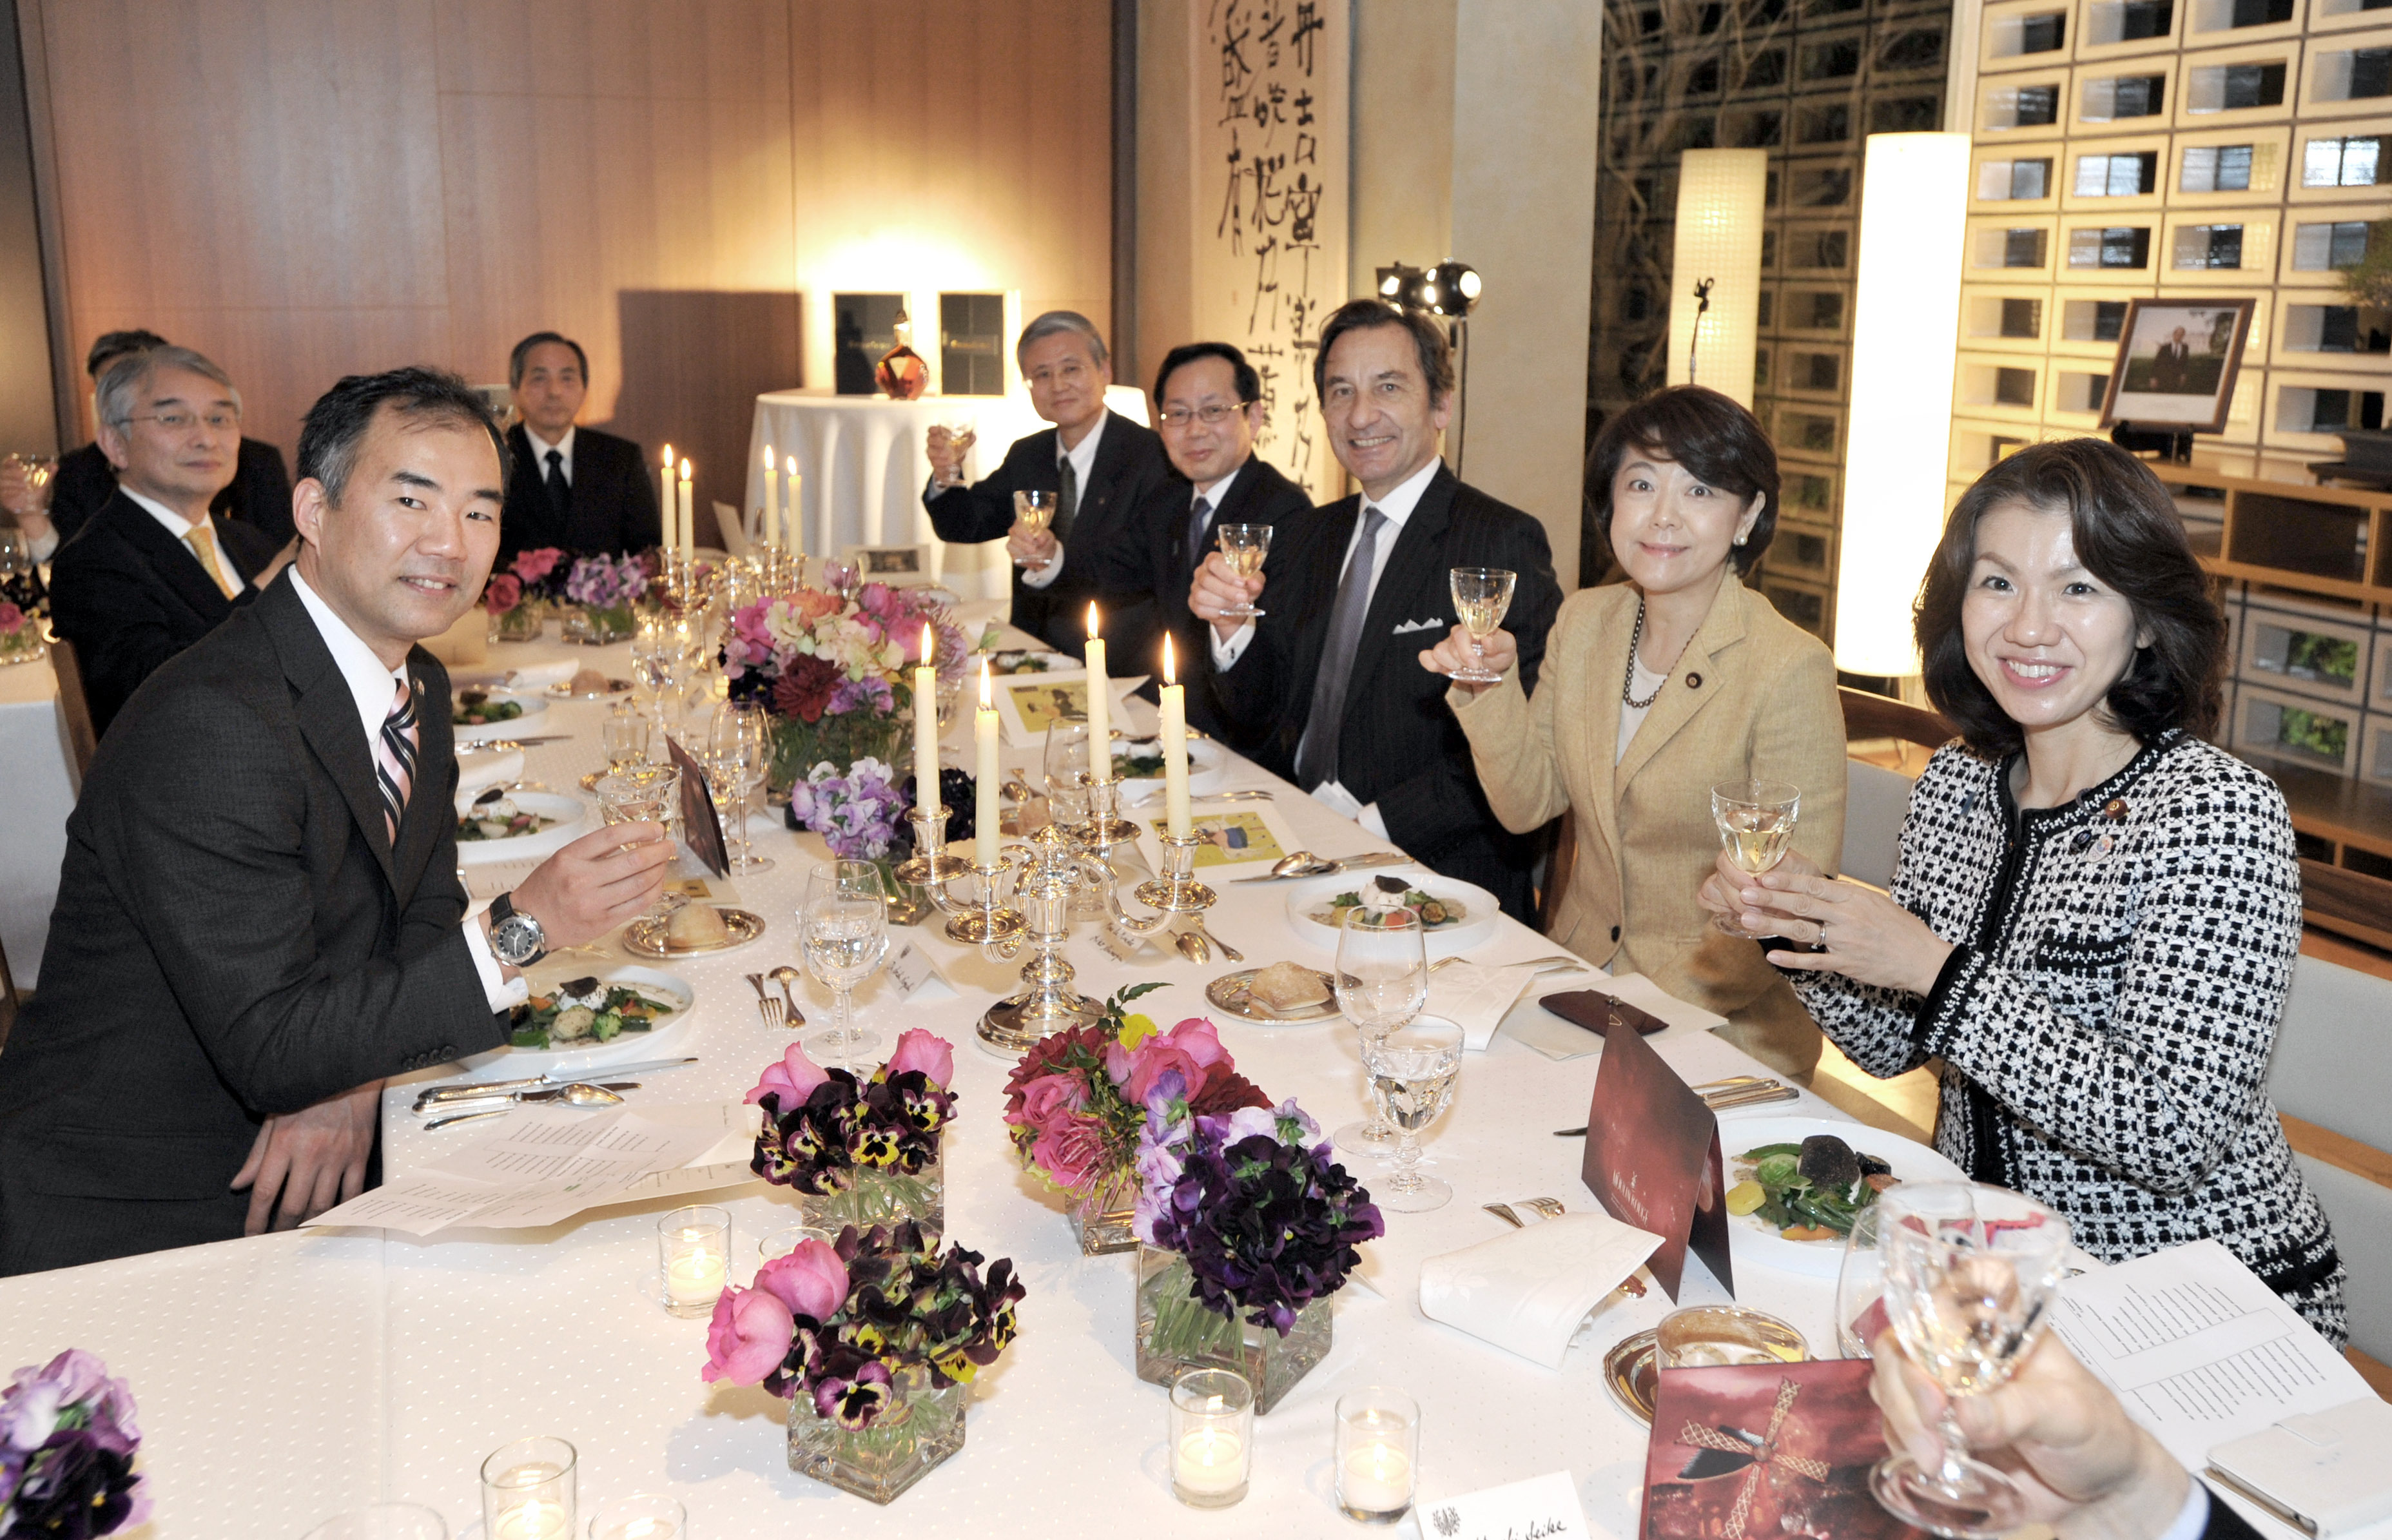 """French Ambassador Thierry Dana (third from right) raises a glass with astronaut Shuichi Noguchi (left); State Minister for Okinawa and Northern Territories Affairs and Minister in Charge of Science and Technology, Space Policy and Territorial Issues Akiko Shimajiri (second from right); Parliamentary Vice-Minister of Education, Culture, Sports, Science and Technology Mayuko Toyota (right); and others guests, at a """"GOOD FRANCE"""" food promotion event, which featured food typically eaten by astronauts prepared as French hors d'oeuvres, at the ambassador's residence in Tokyo on March 22. 